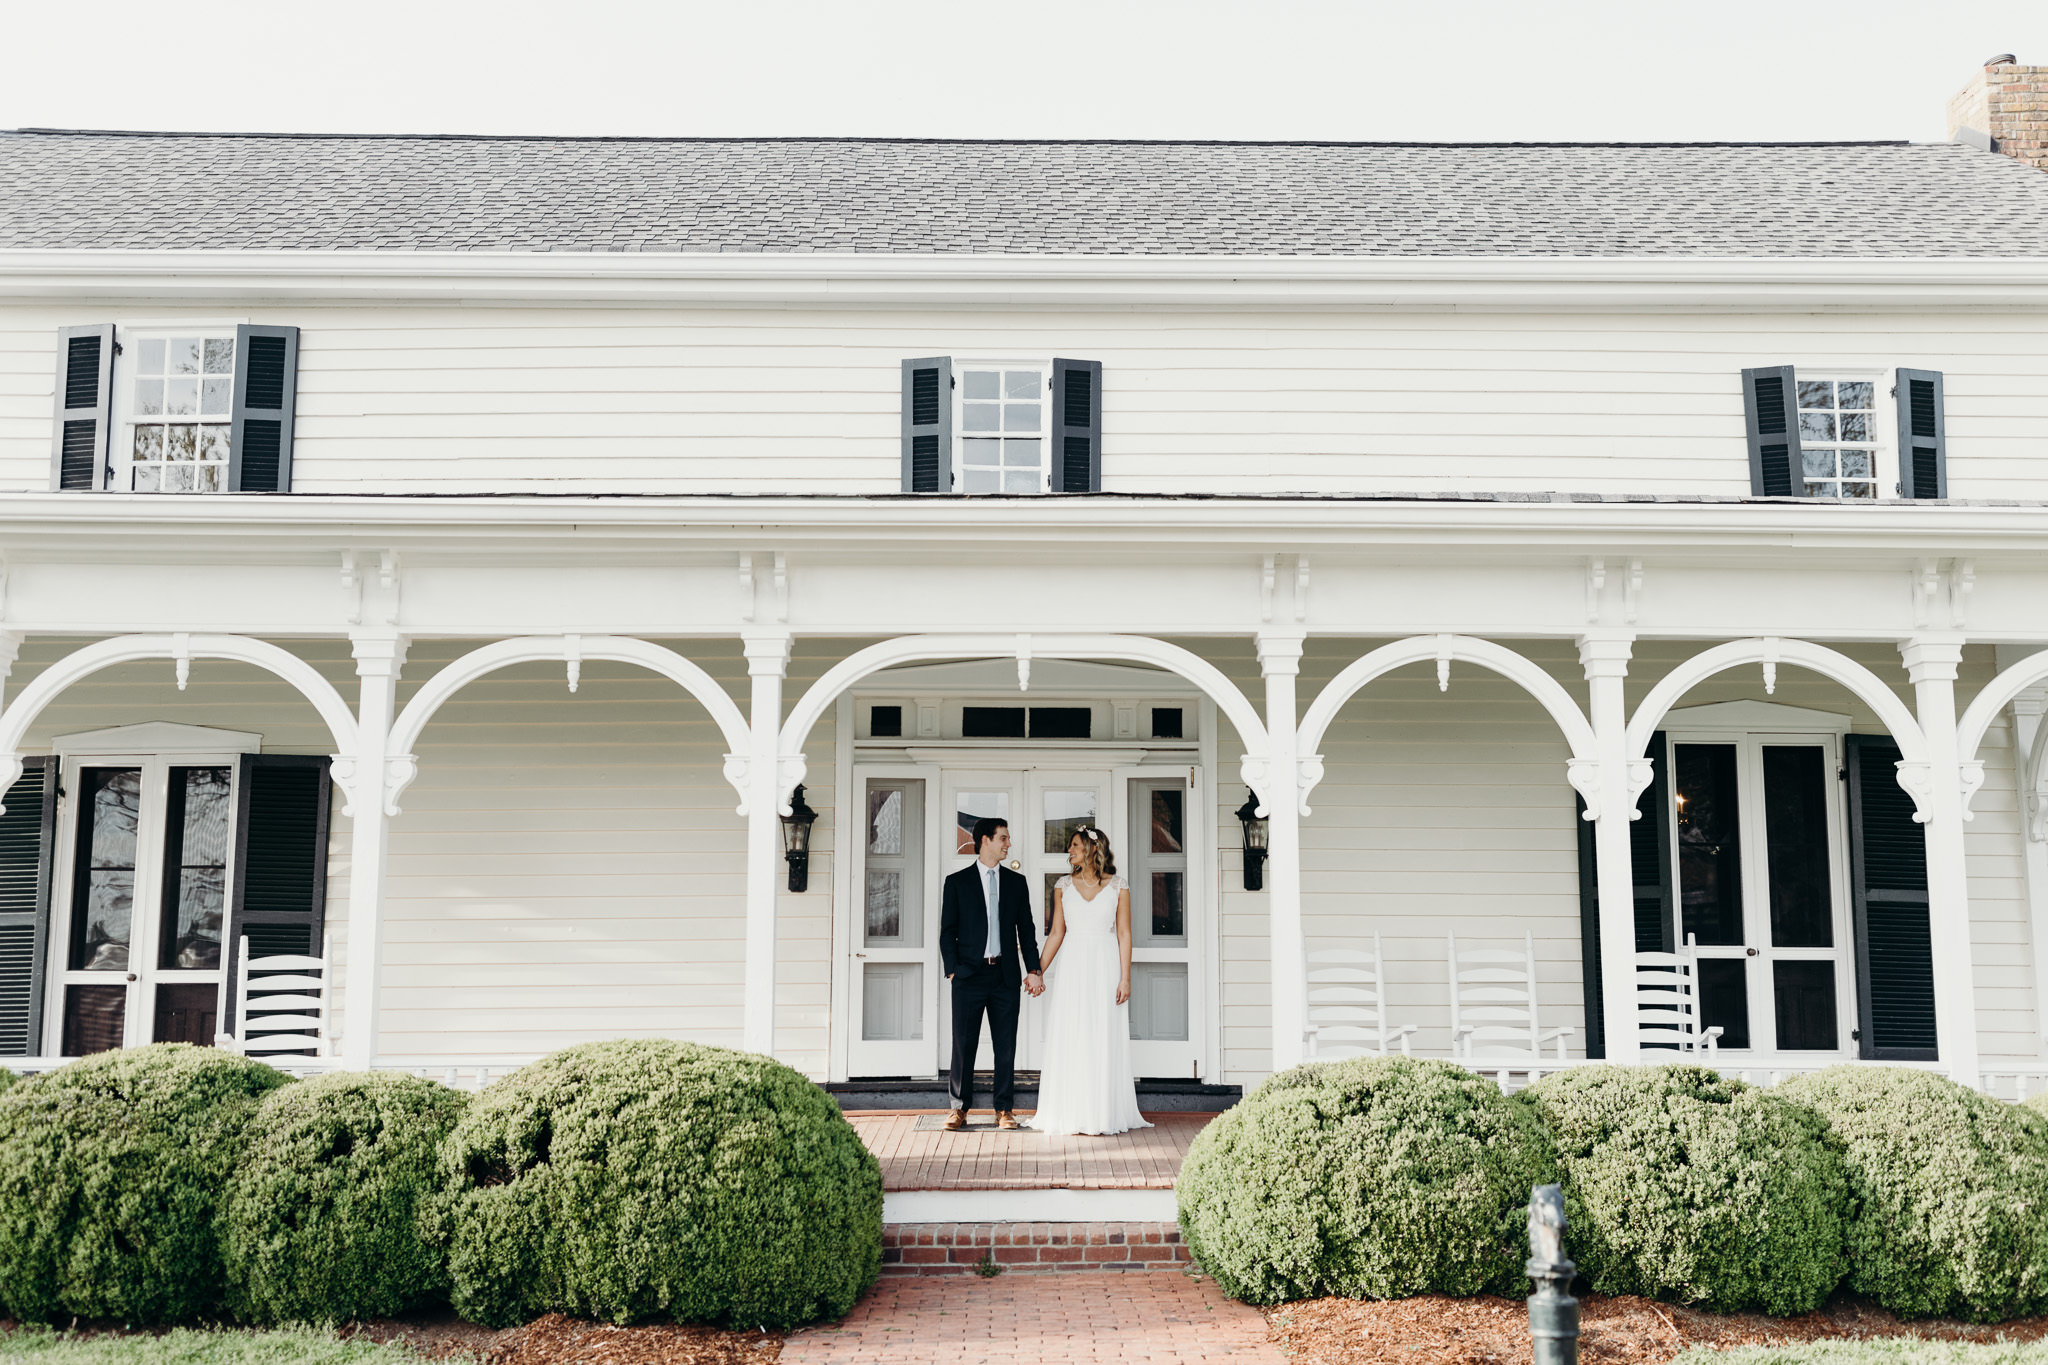 The Cool Springs House, Wedding venue, in Brentwood, Tennessee